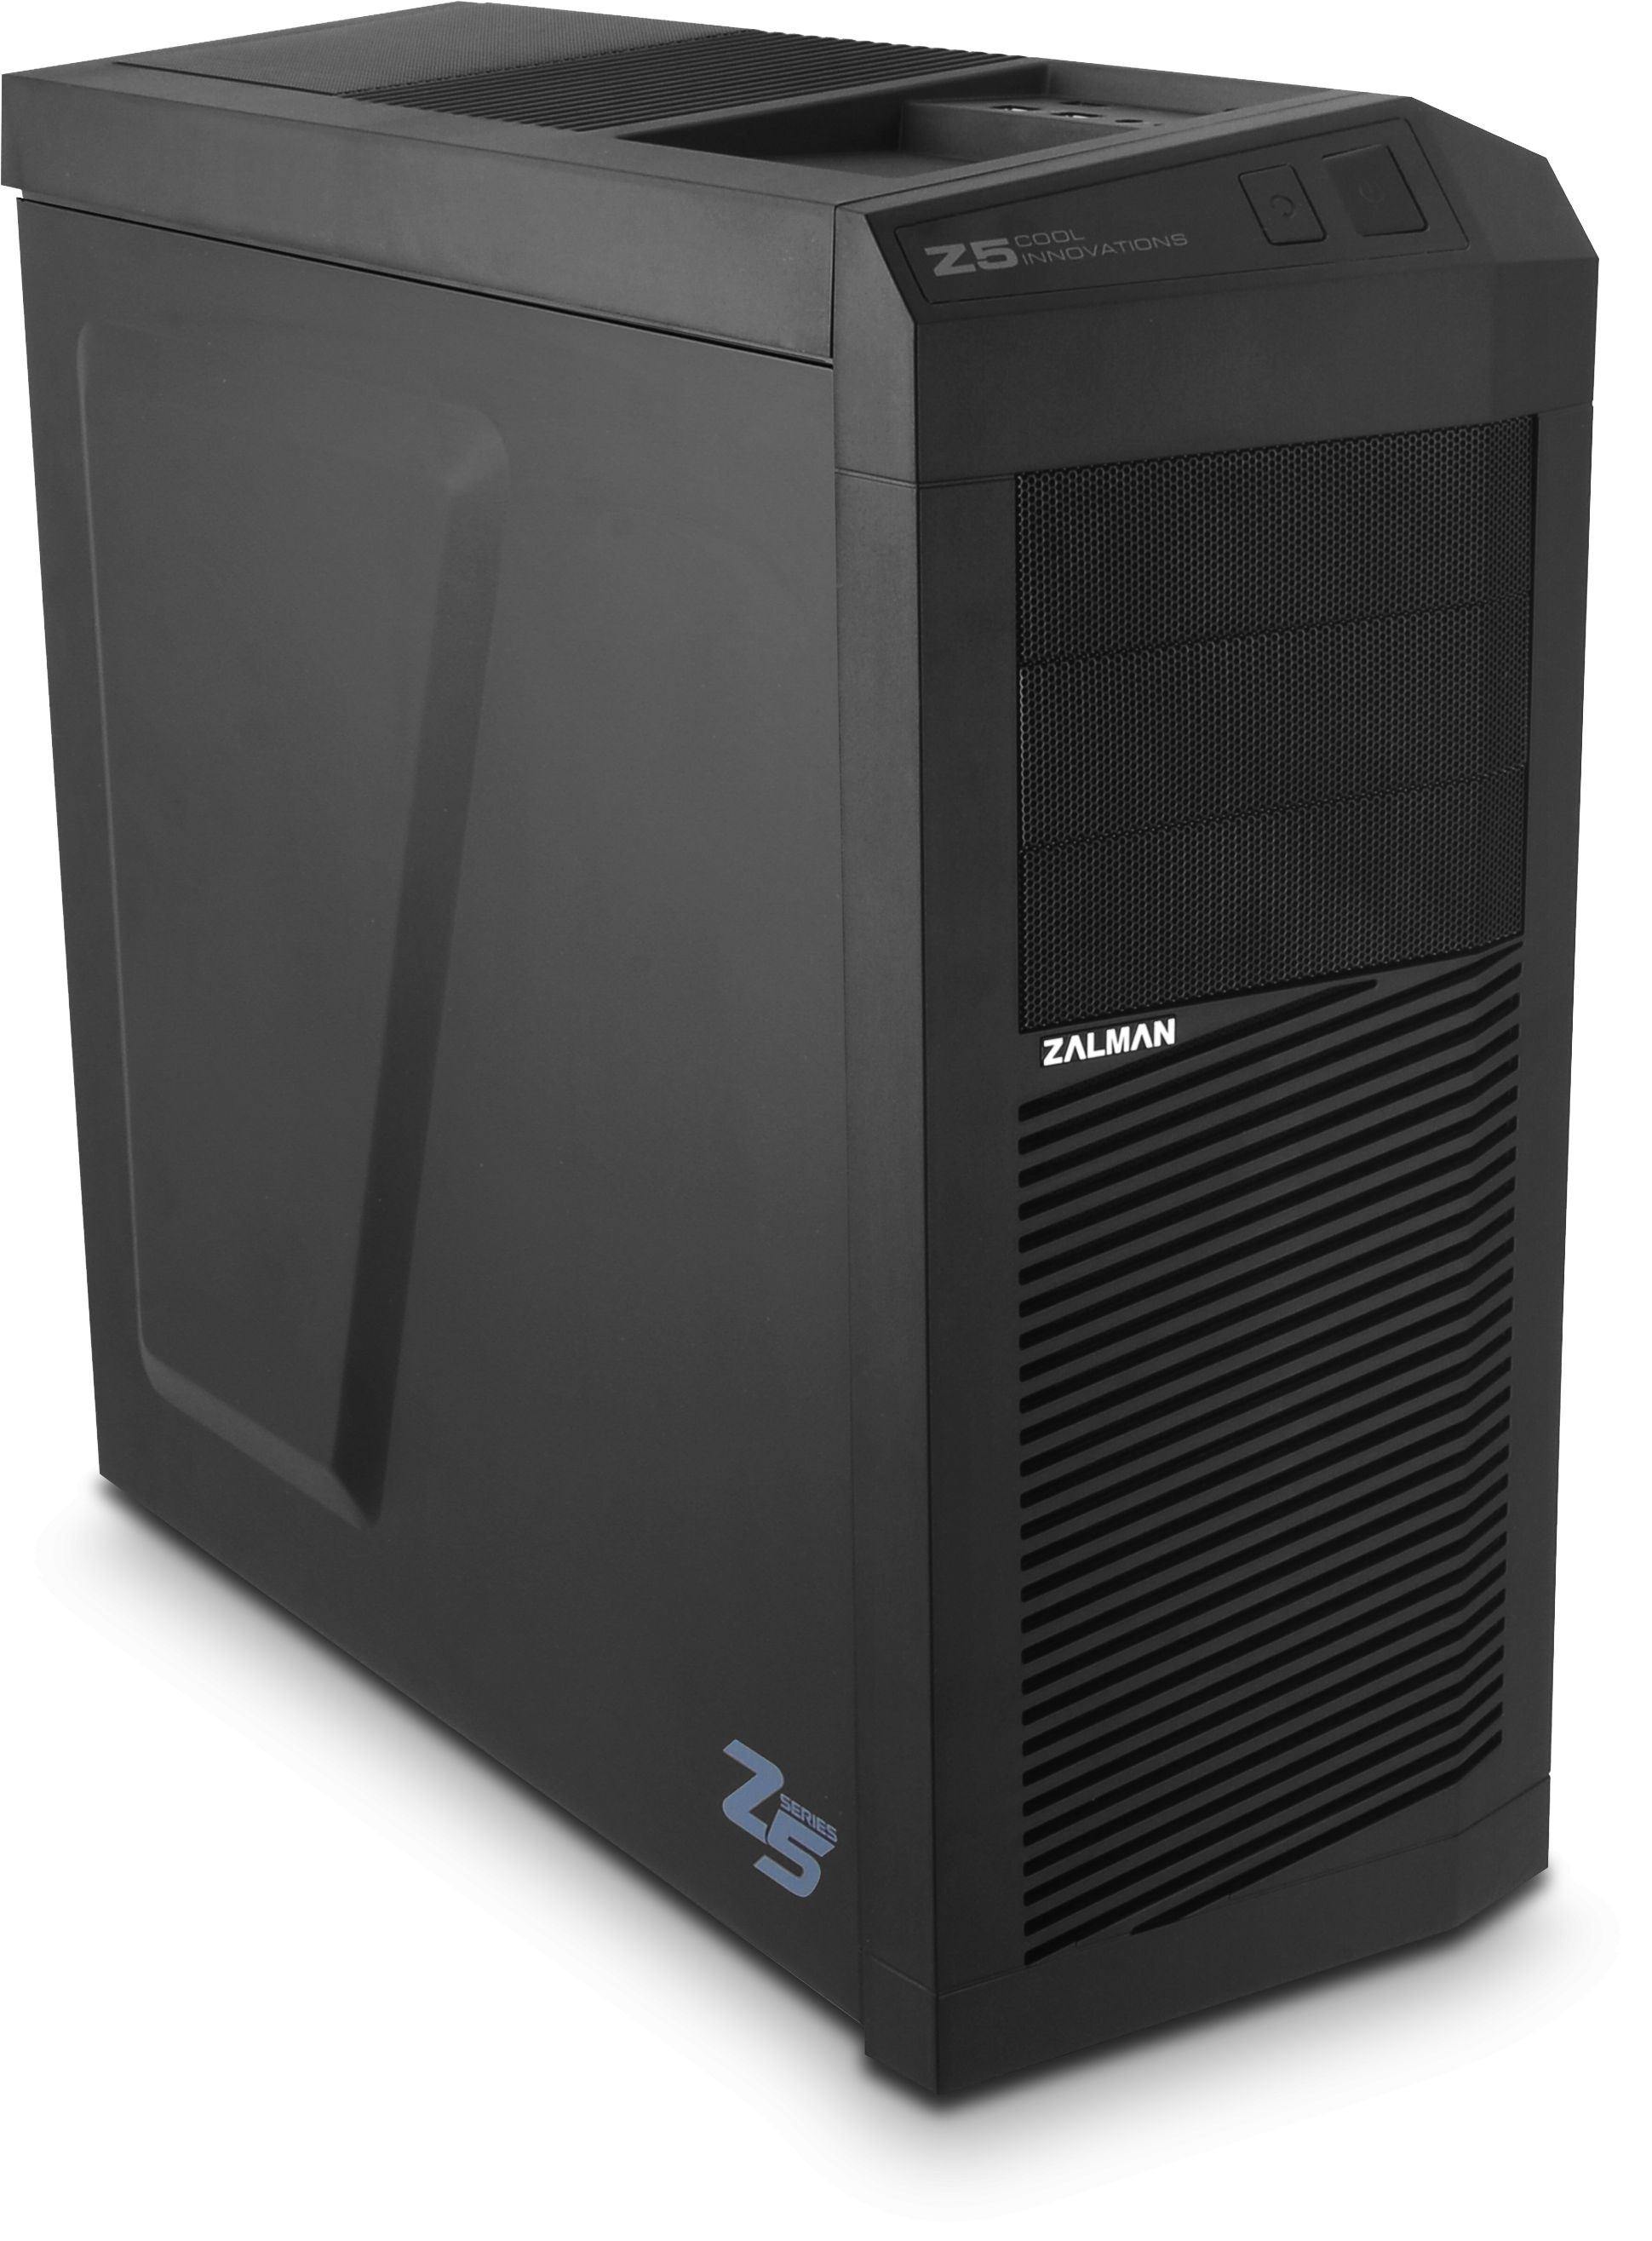 Zalman Z5 Atx Mid Tower Pc Cases